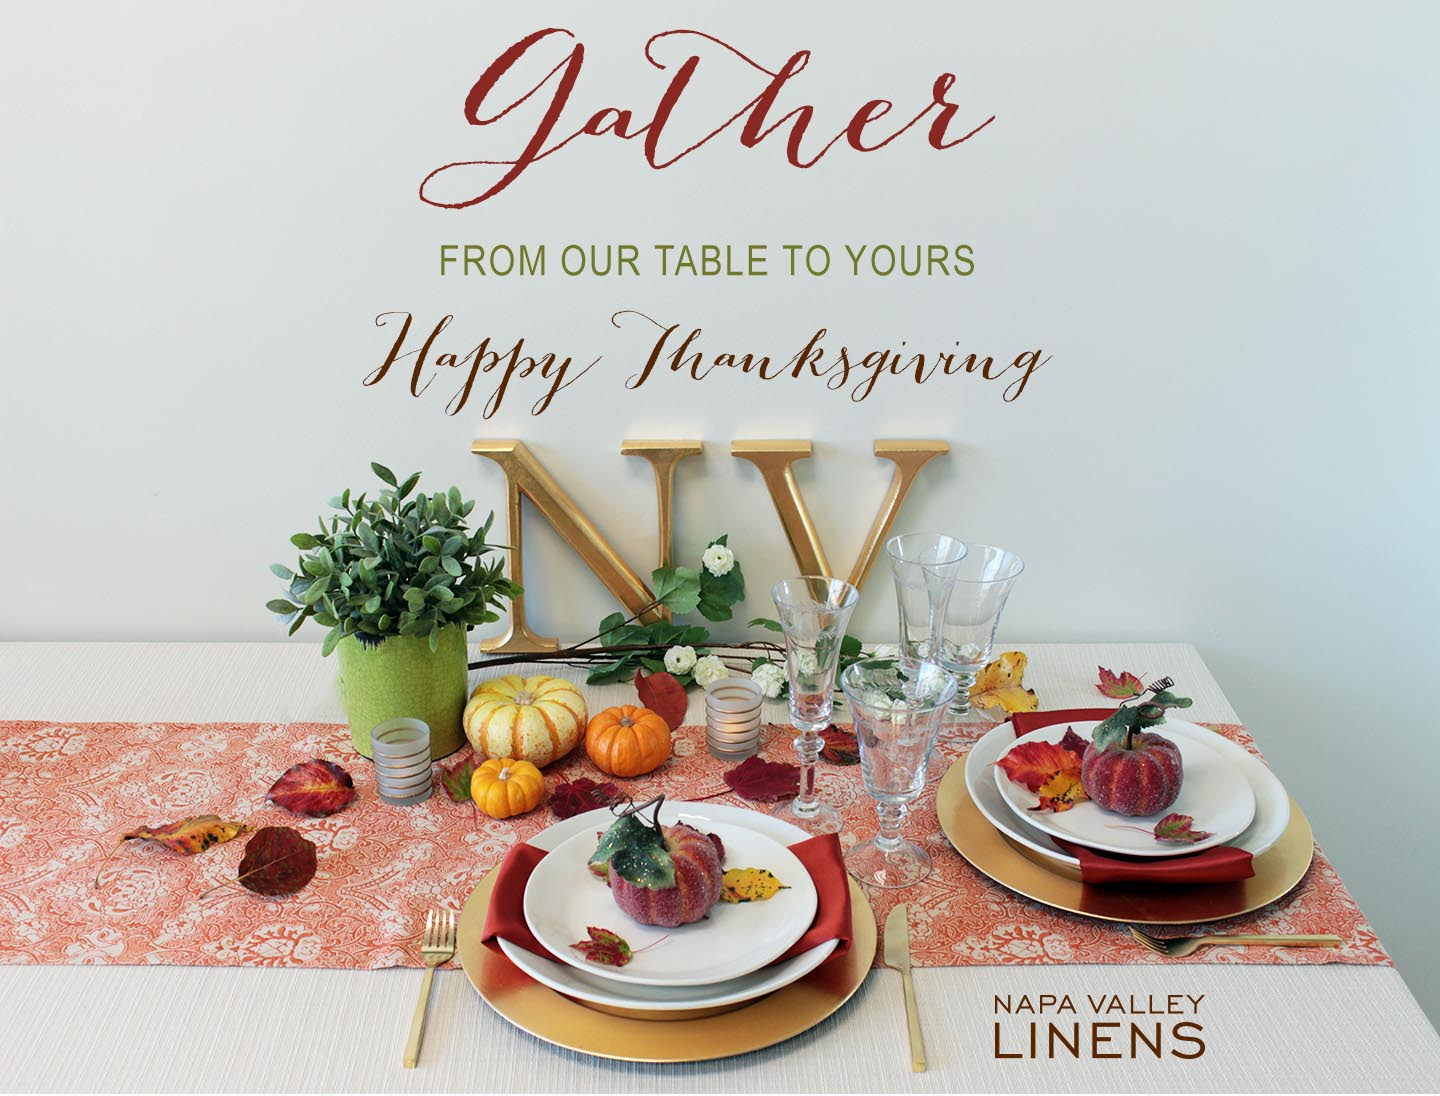 Timeless neutral and bright fall colors make a festive Thanksgiving table!